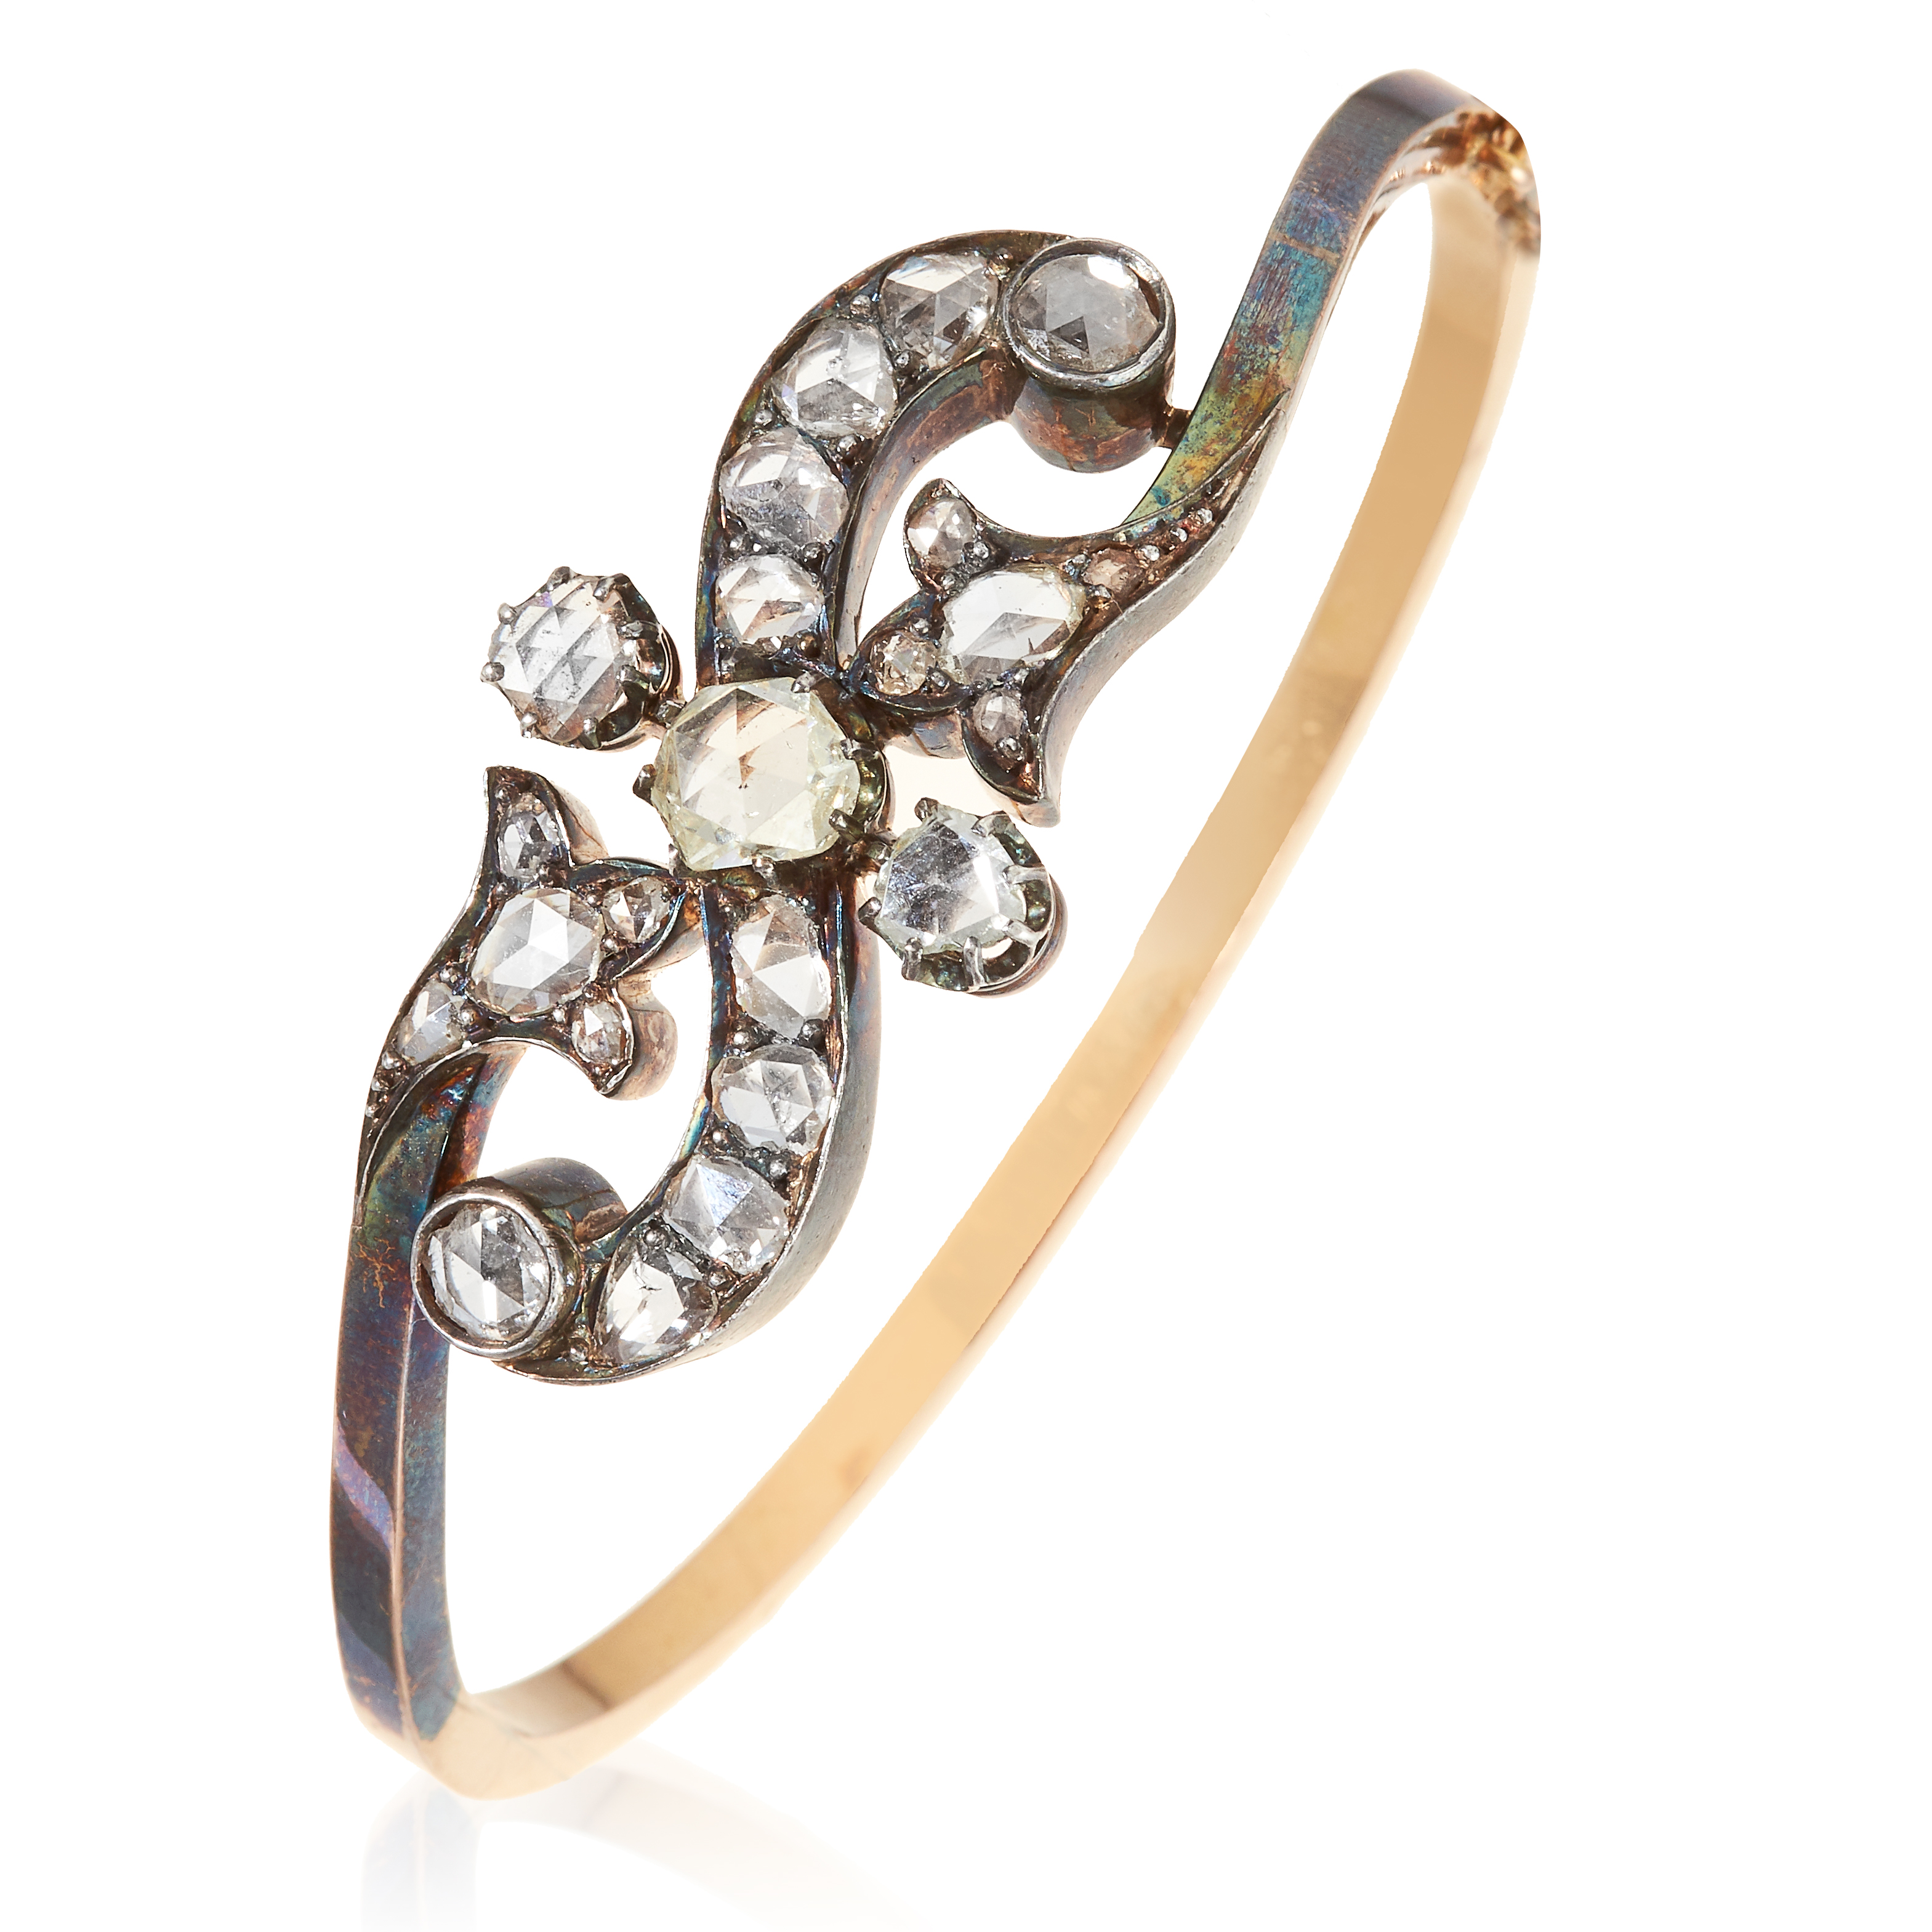 AN ANTIQUE DIAMOND BANGLE, 19TH CENTURY in high carat yellow gold, the scrolling motif jewelled with